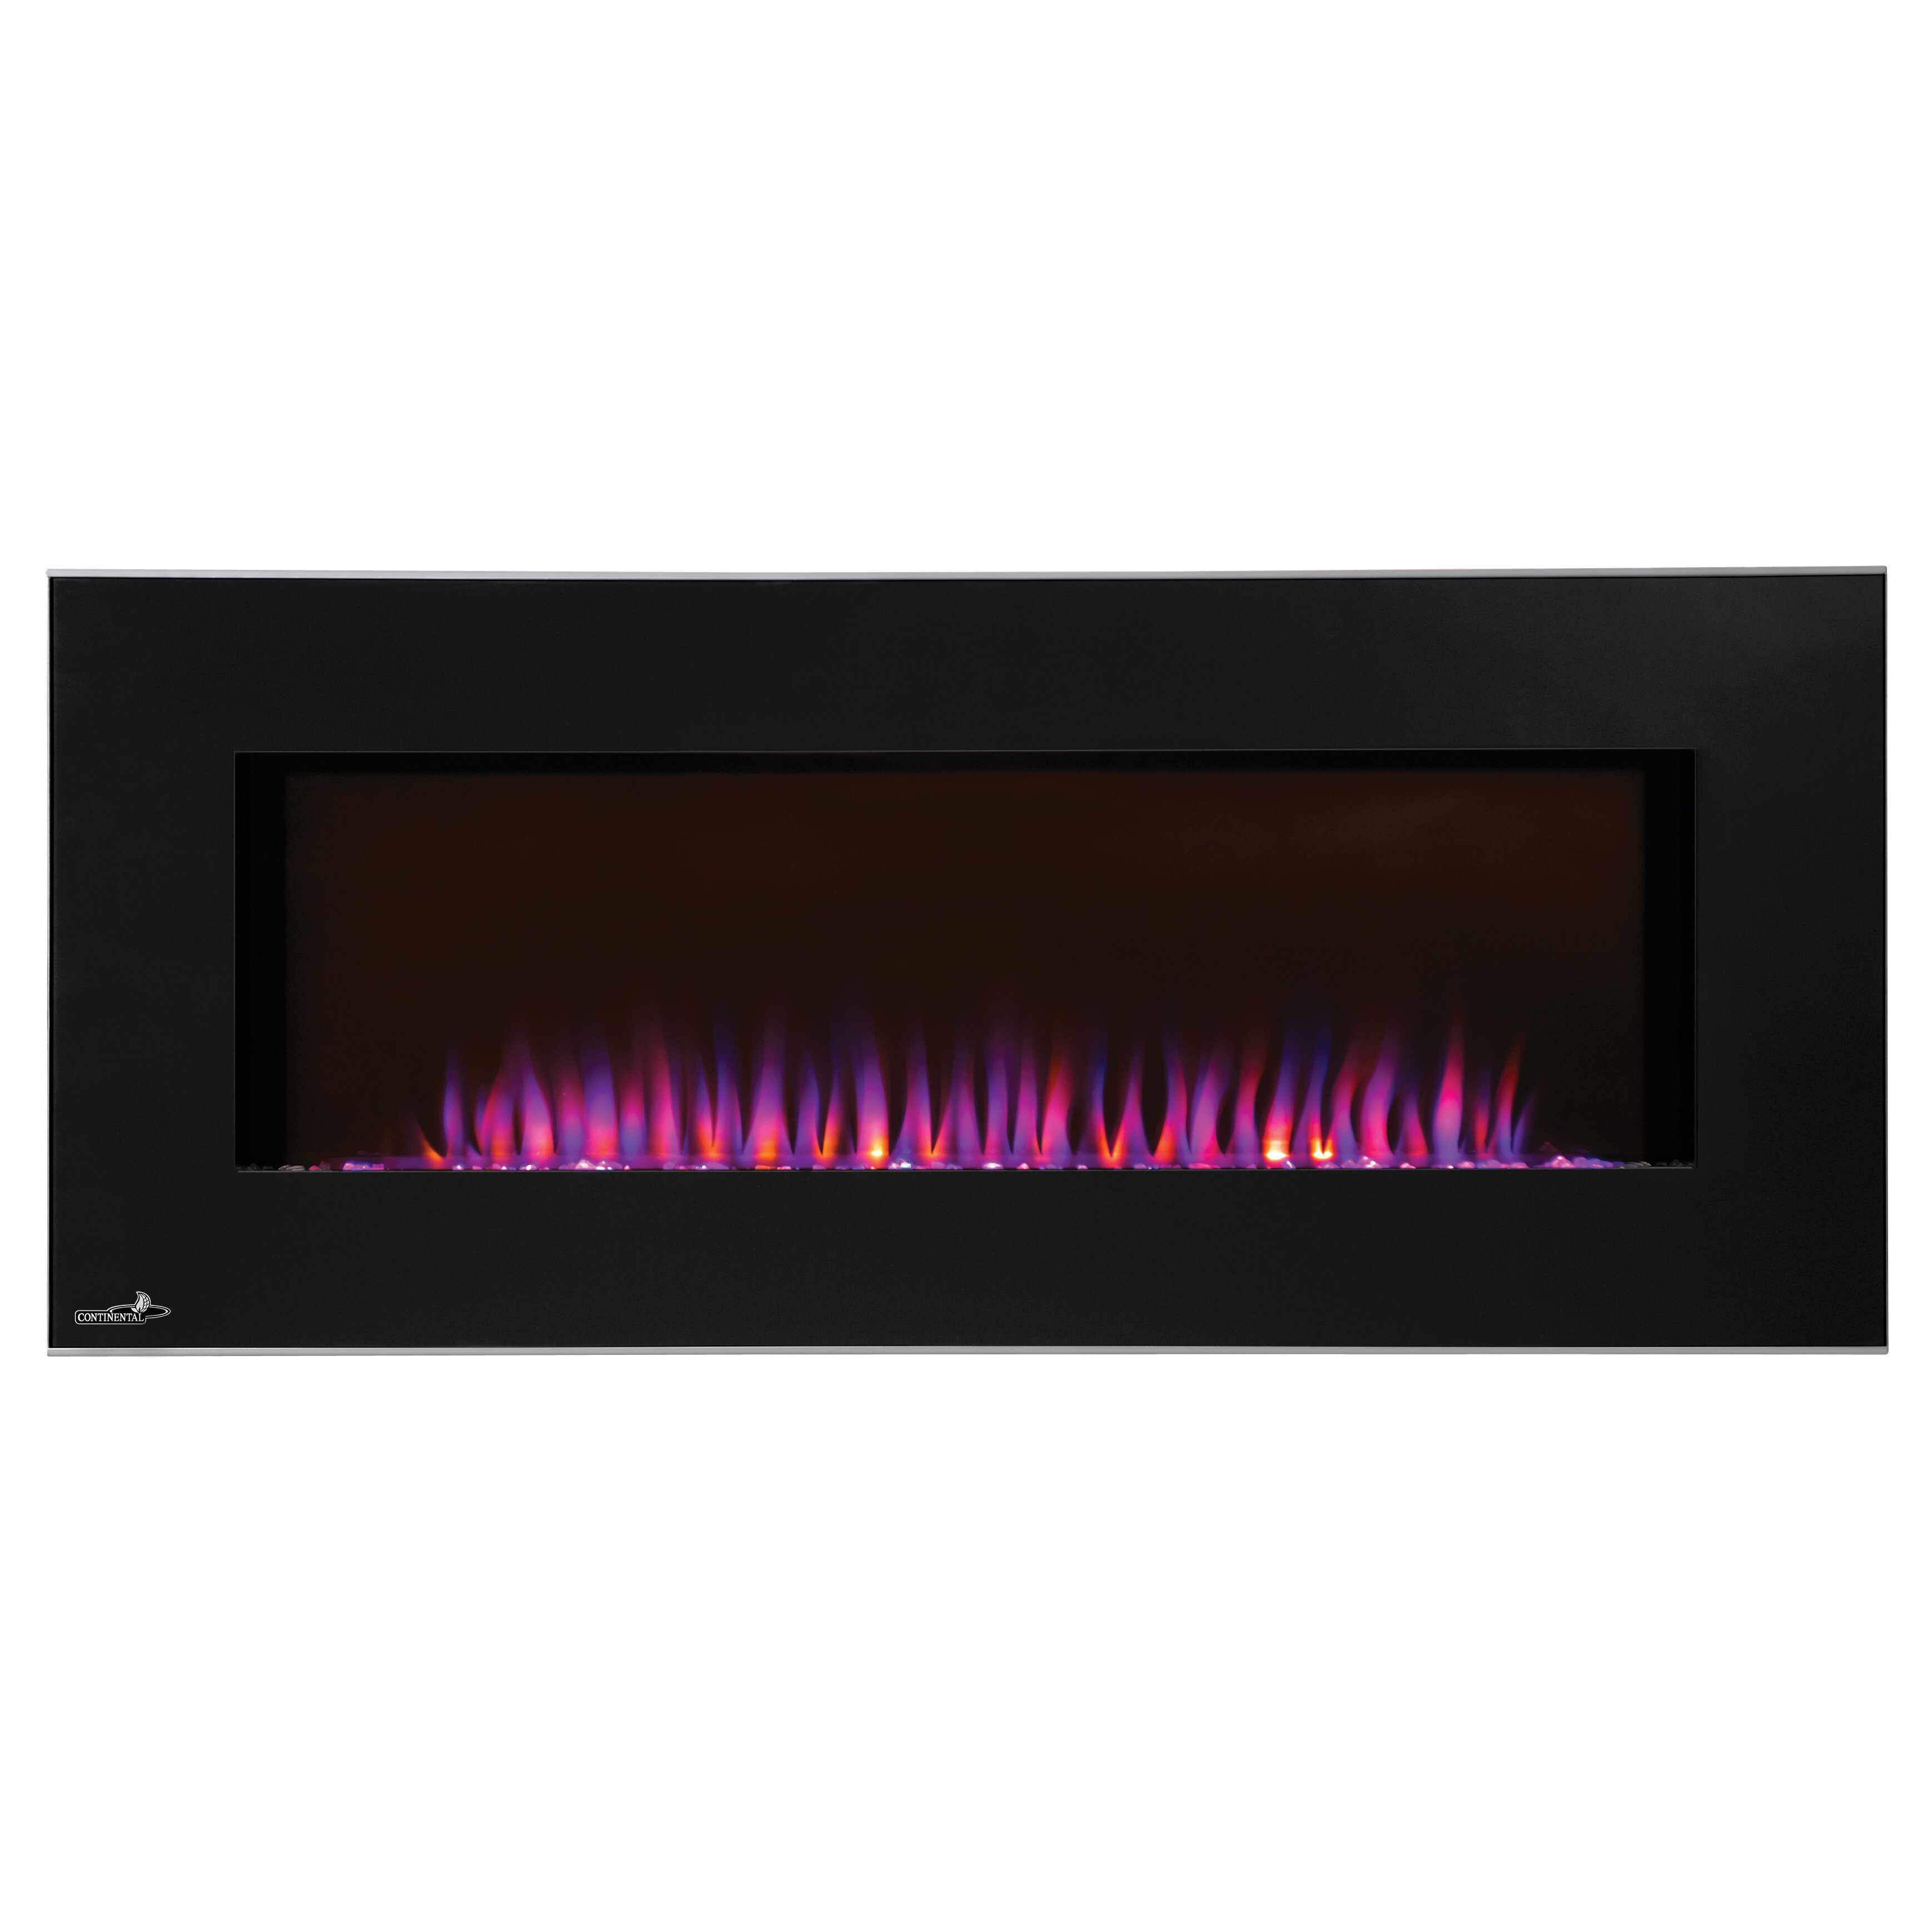 Napoleon Azure Wall Mount Electric Fireplace Wayfair : Napoleon Azure25E2258425A225C22599 Wall Mount Electric Fireplace from www.wayfair.com size 3475 x 3475 jpeg 563kB